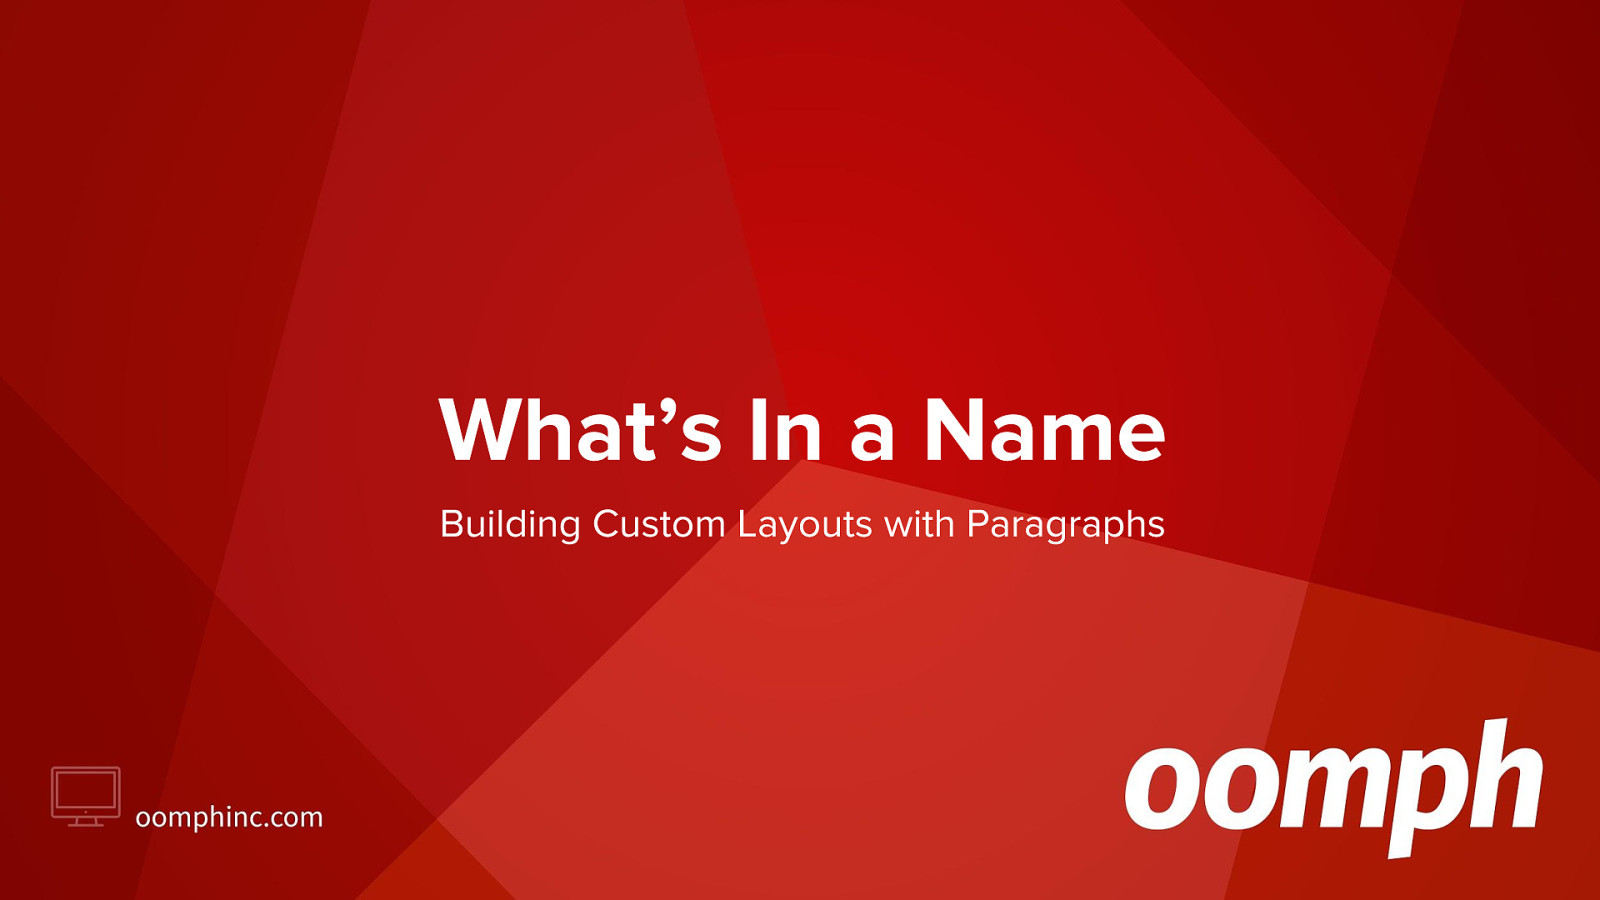 What's In a Name - Building Custom Layouts with Paragraphs